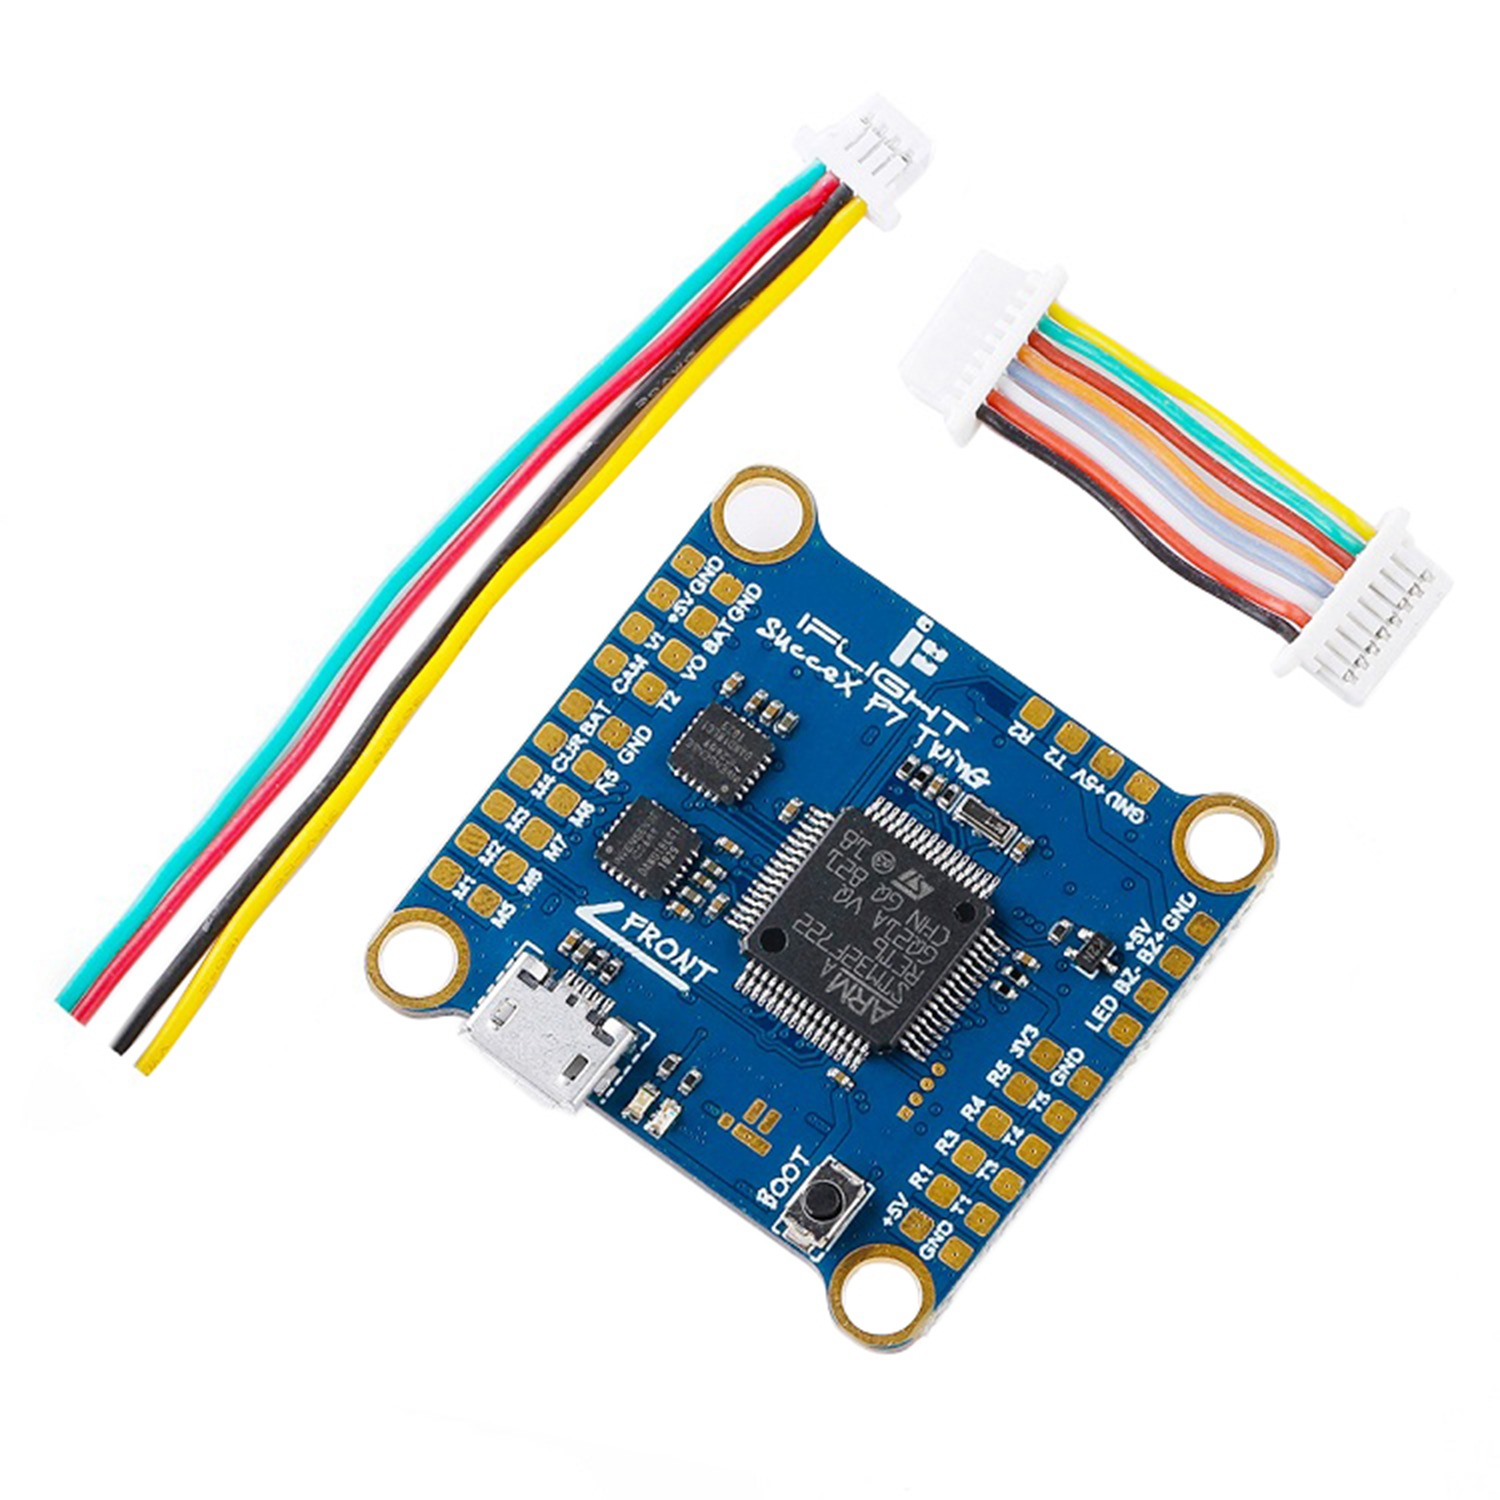 Iflight Succex F7 Twing Flight Controller(Dual Ic20689) For Fpv DroneIflight Succex F7 Twing Flight Controller(Dual Ic20689) For Fpv Drone